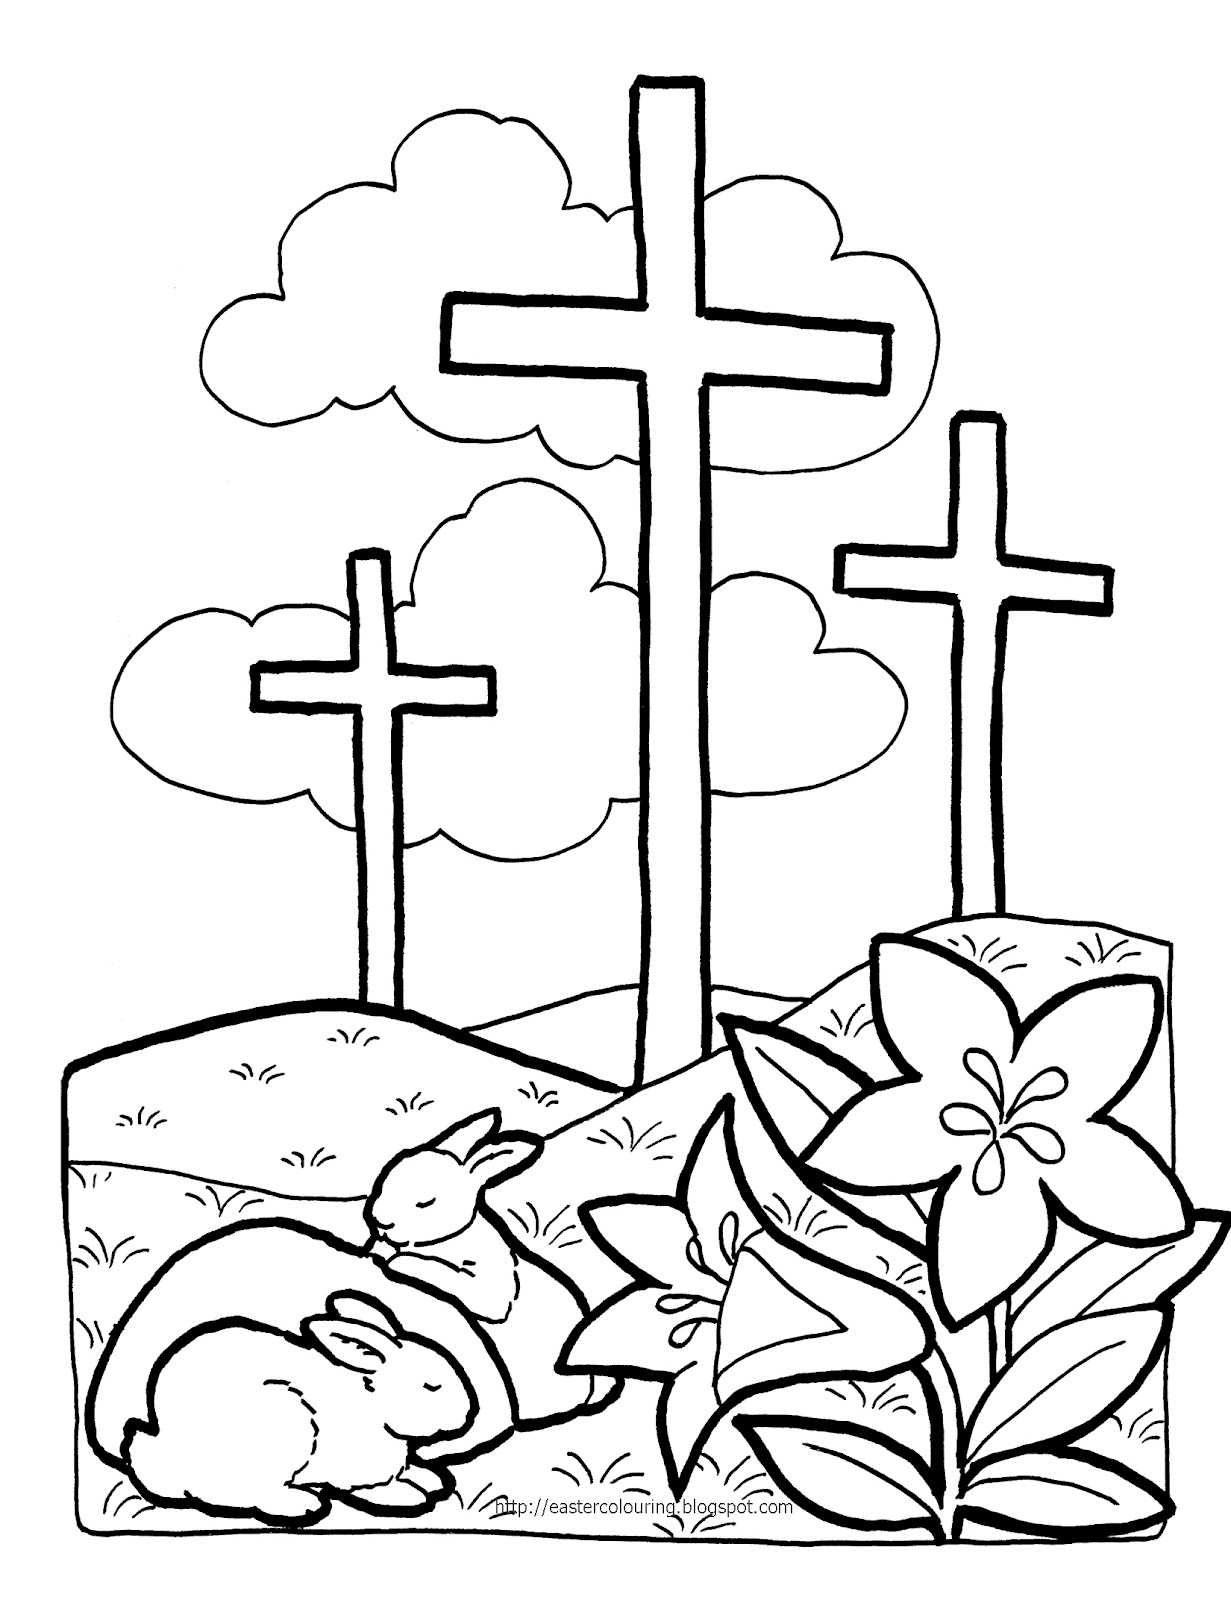 Christian coloring sheets printables thanksgiving for Christian thanksgiving coloring pages for kids